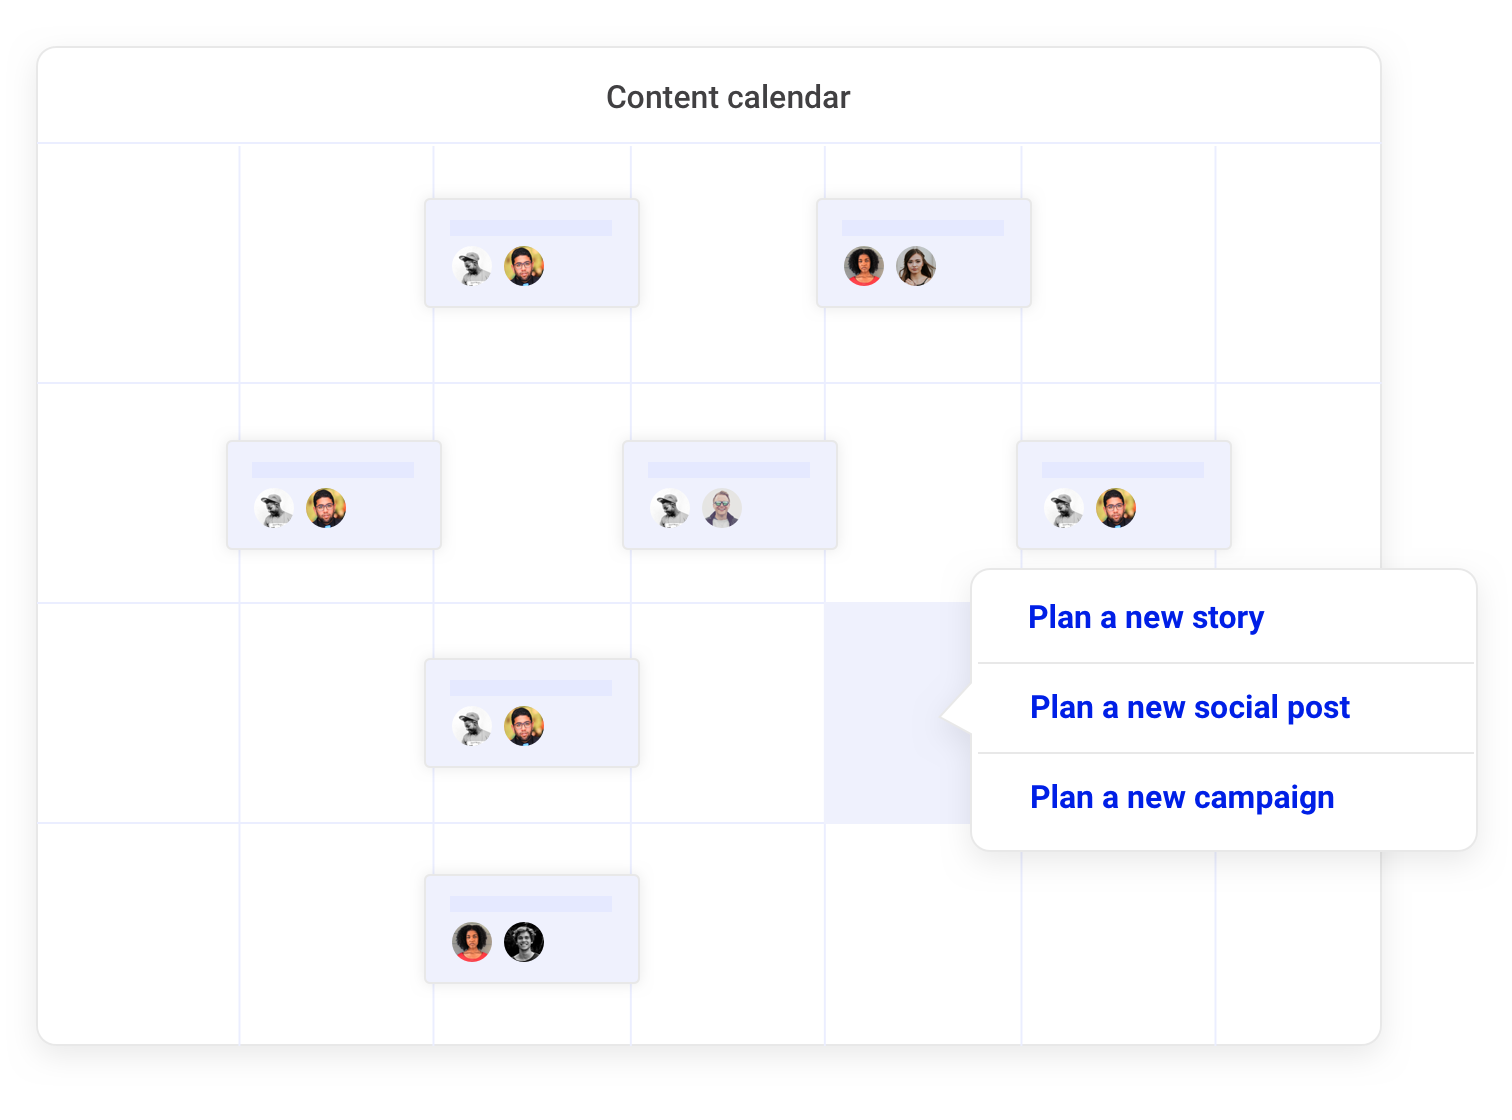 CMS/Ecommerce: See the big picture in one marketing calendar